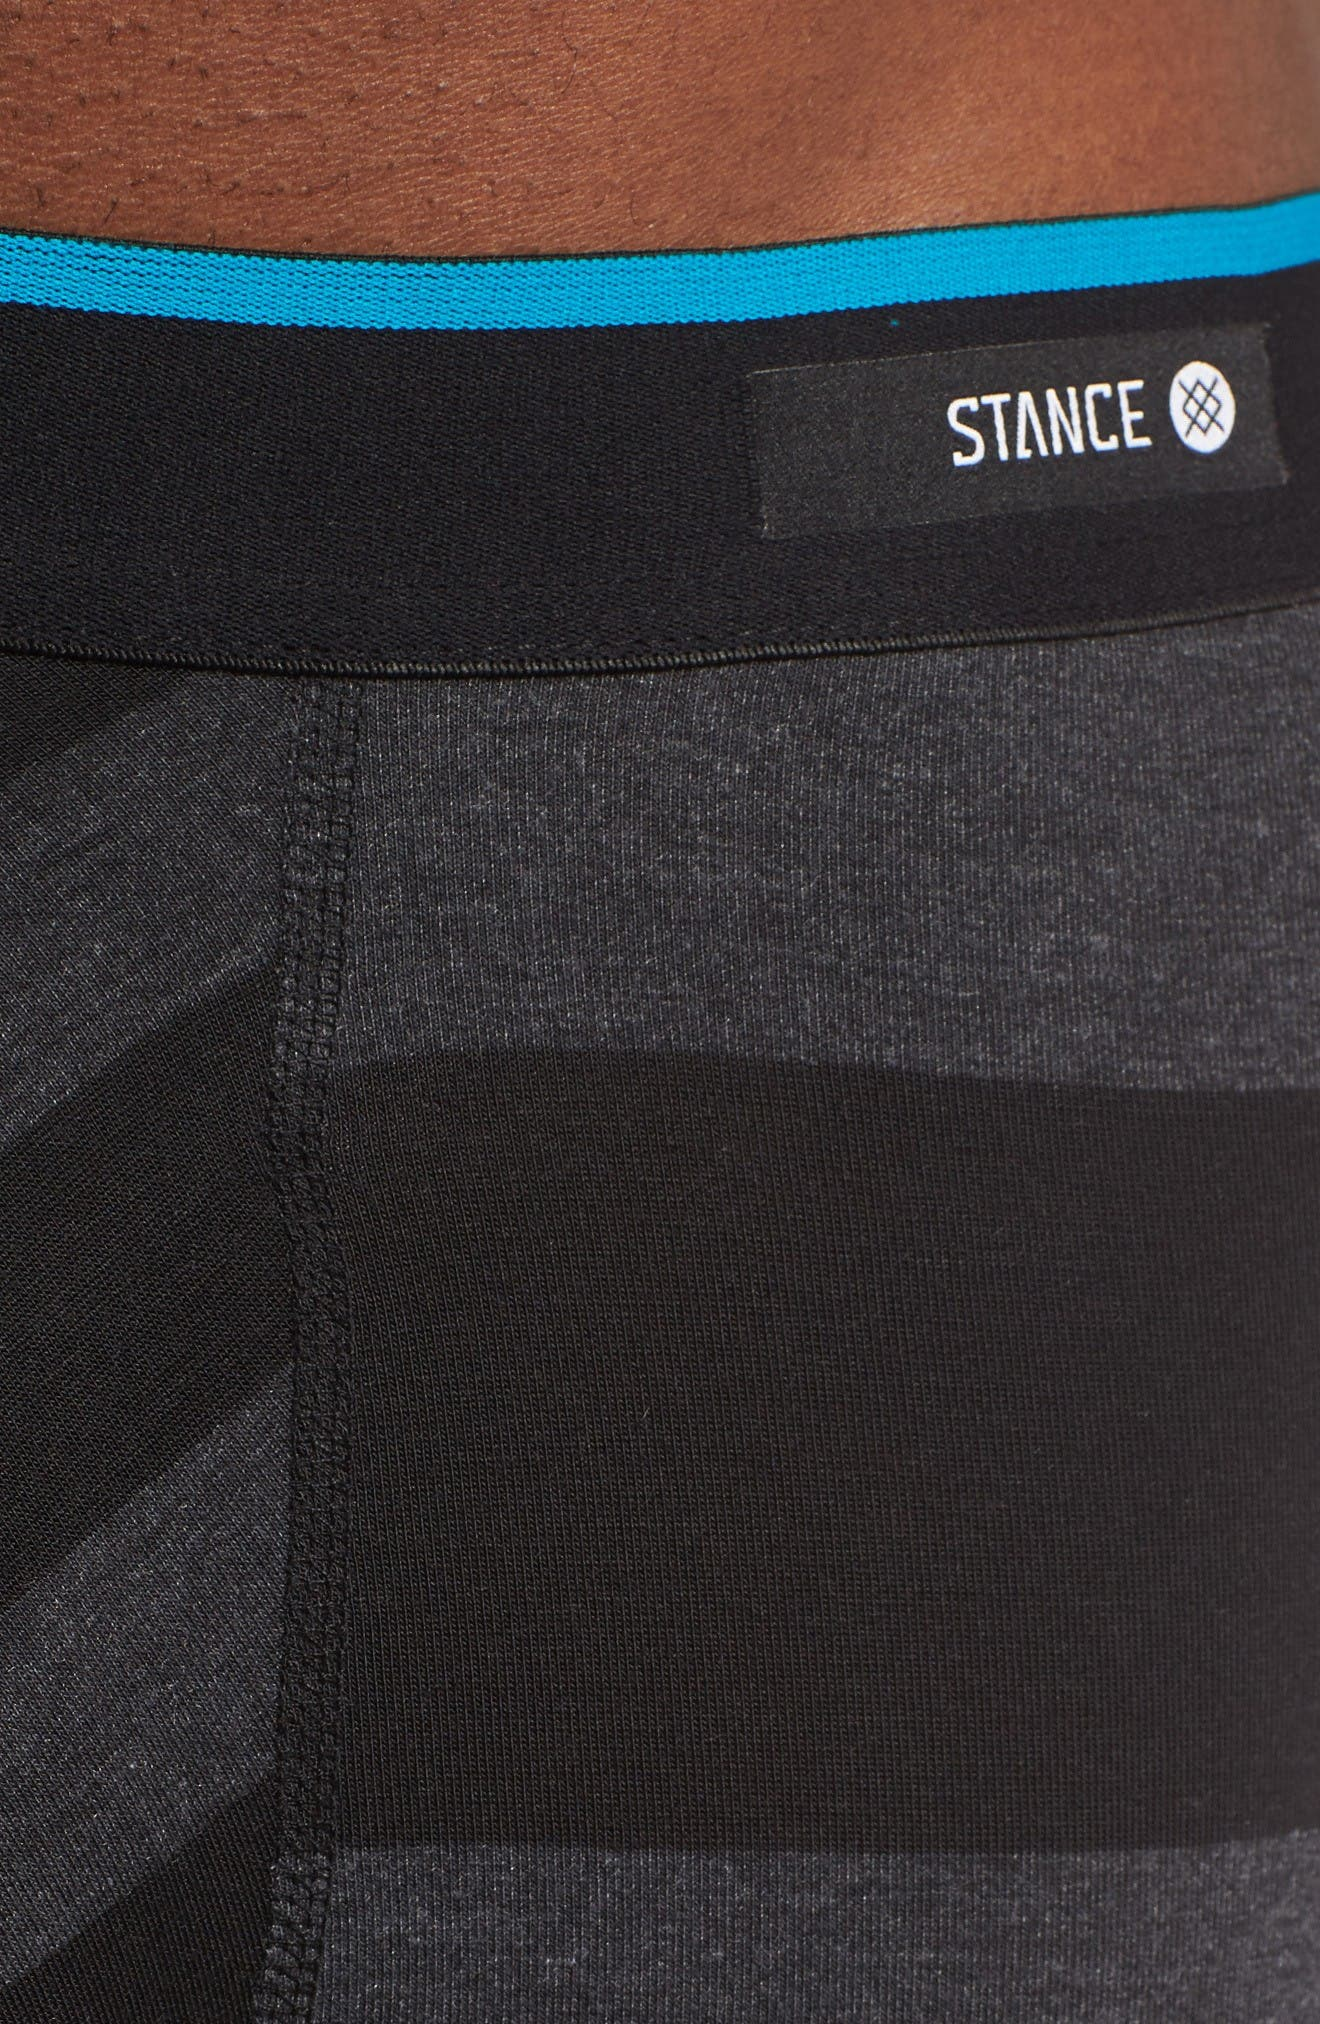 Alternate Image 4  - Stance The Basilone - Mariner Stretch Modal Boxer Briefs